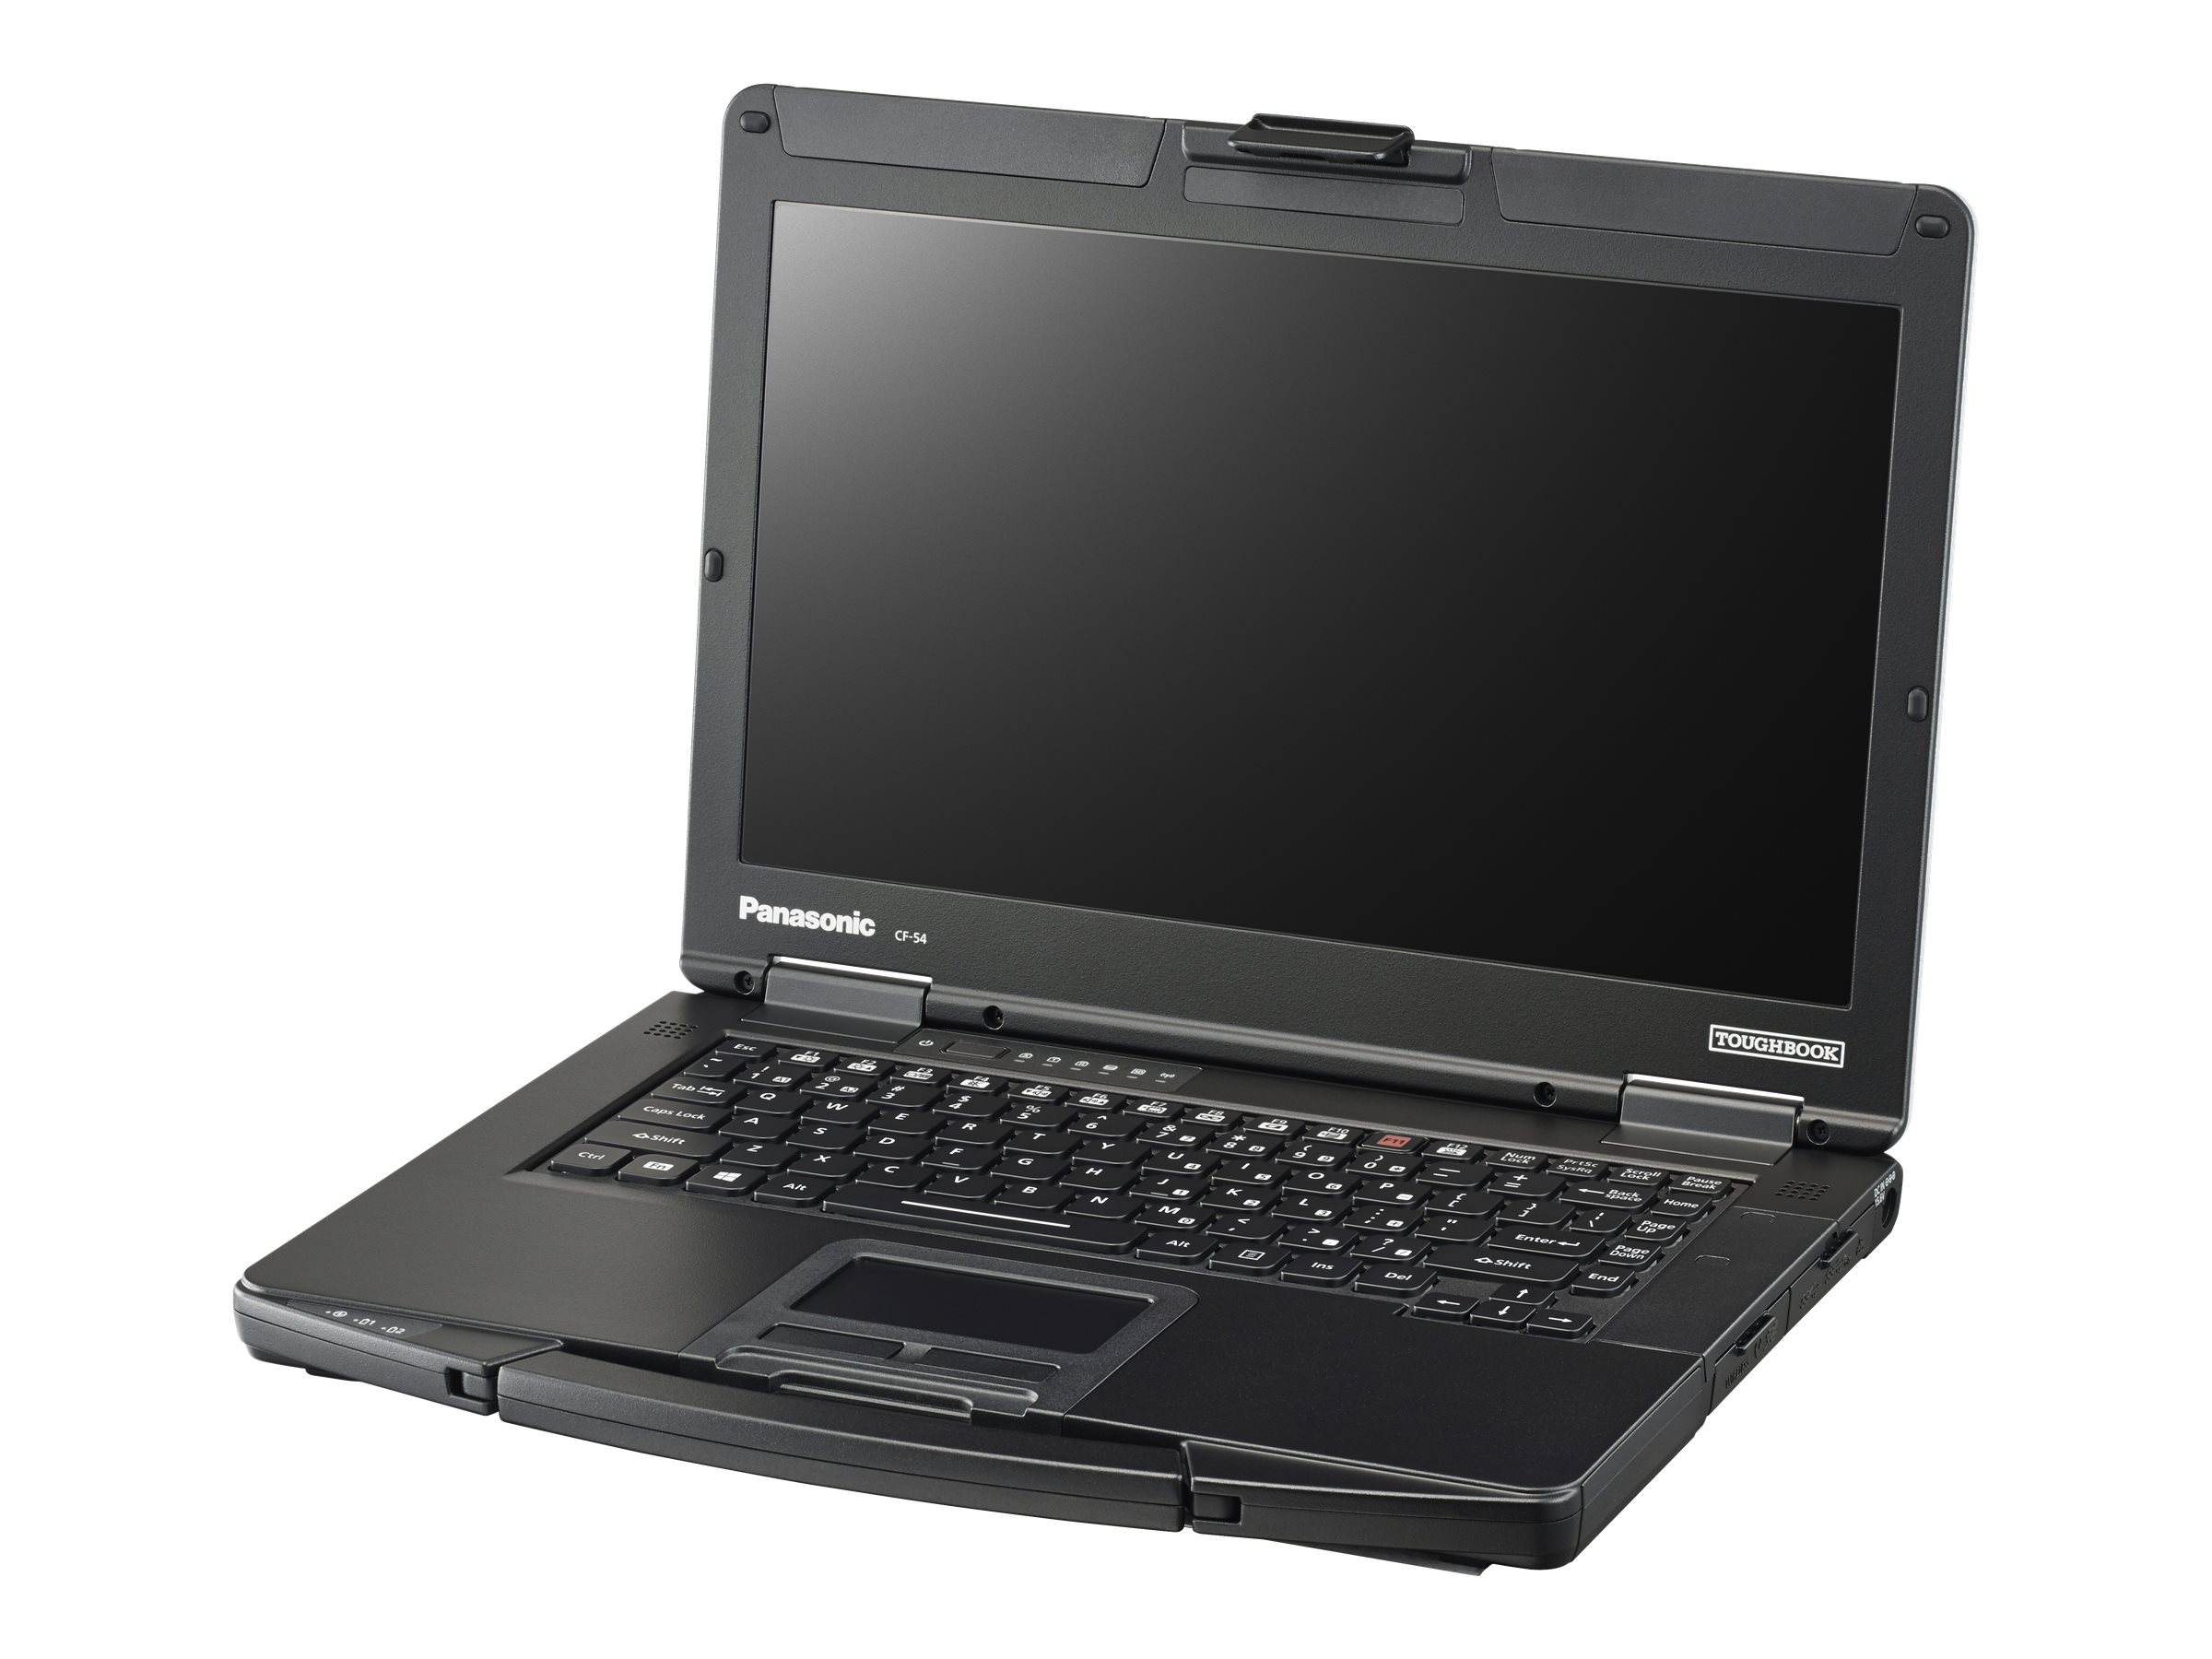 Panasonic Toughbook 54 2.4GHz Core i5 14in display